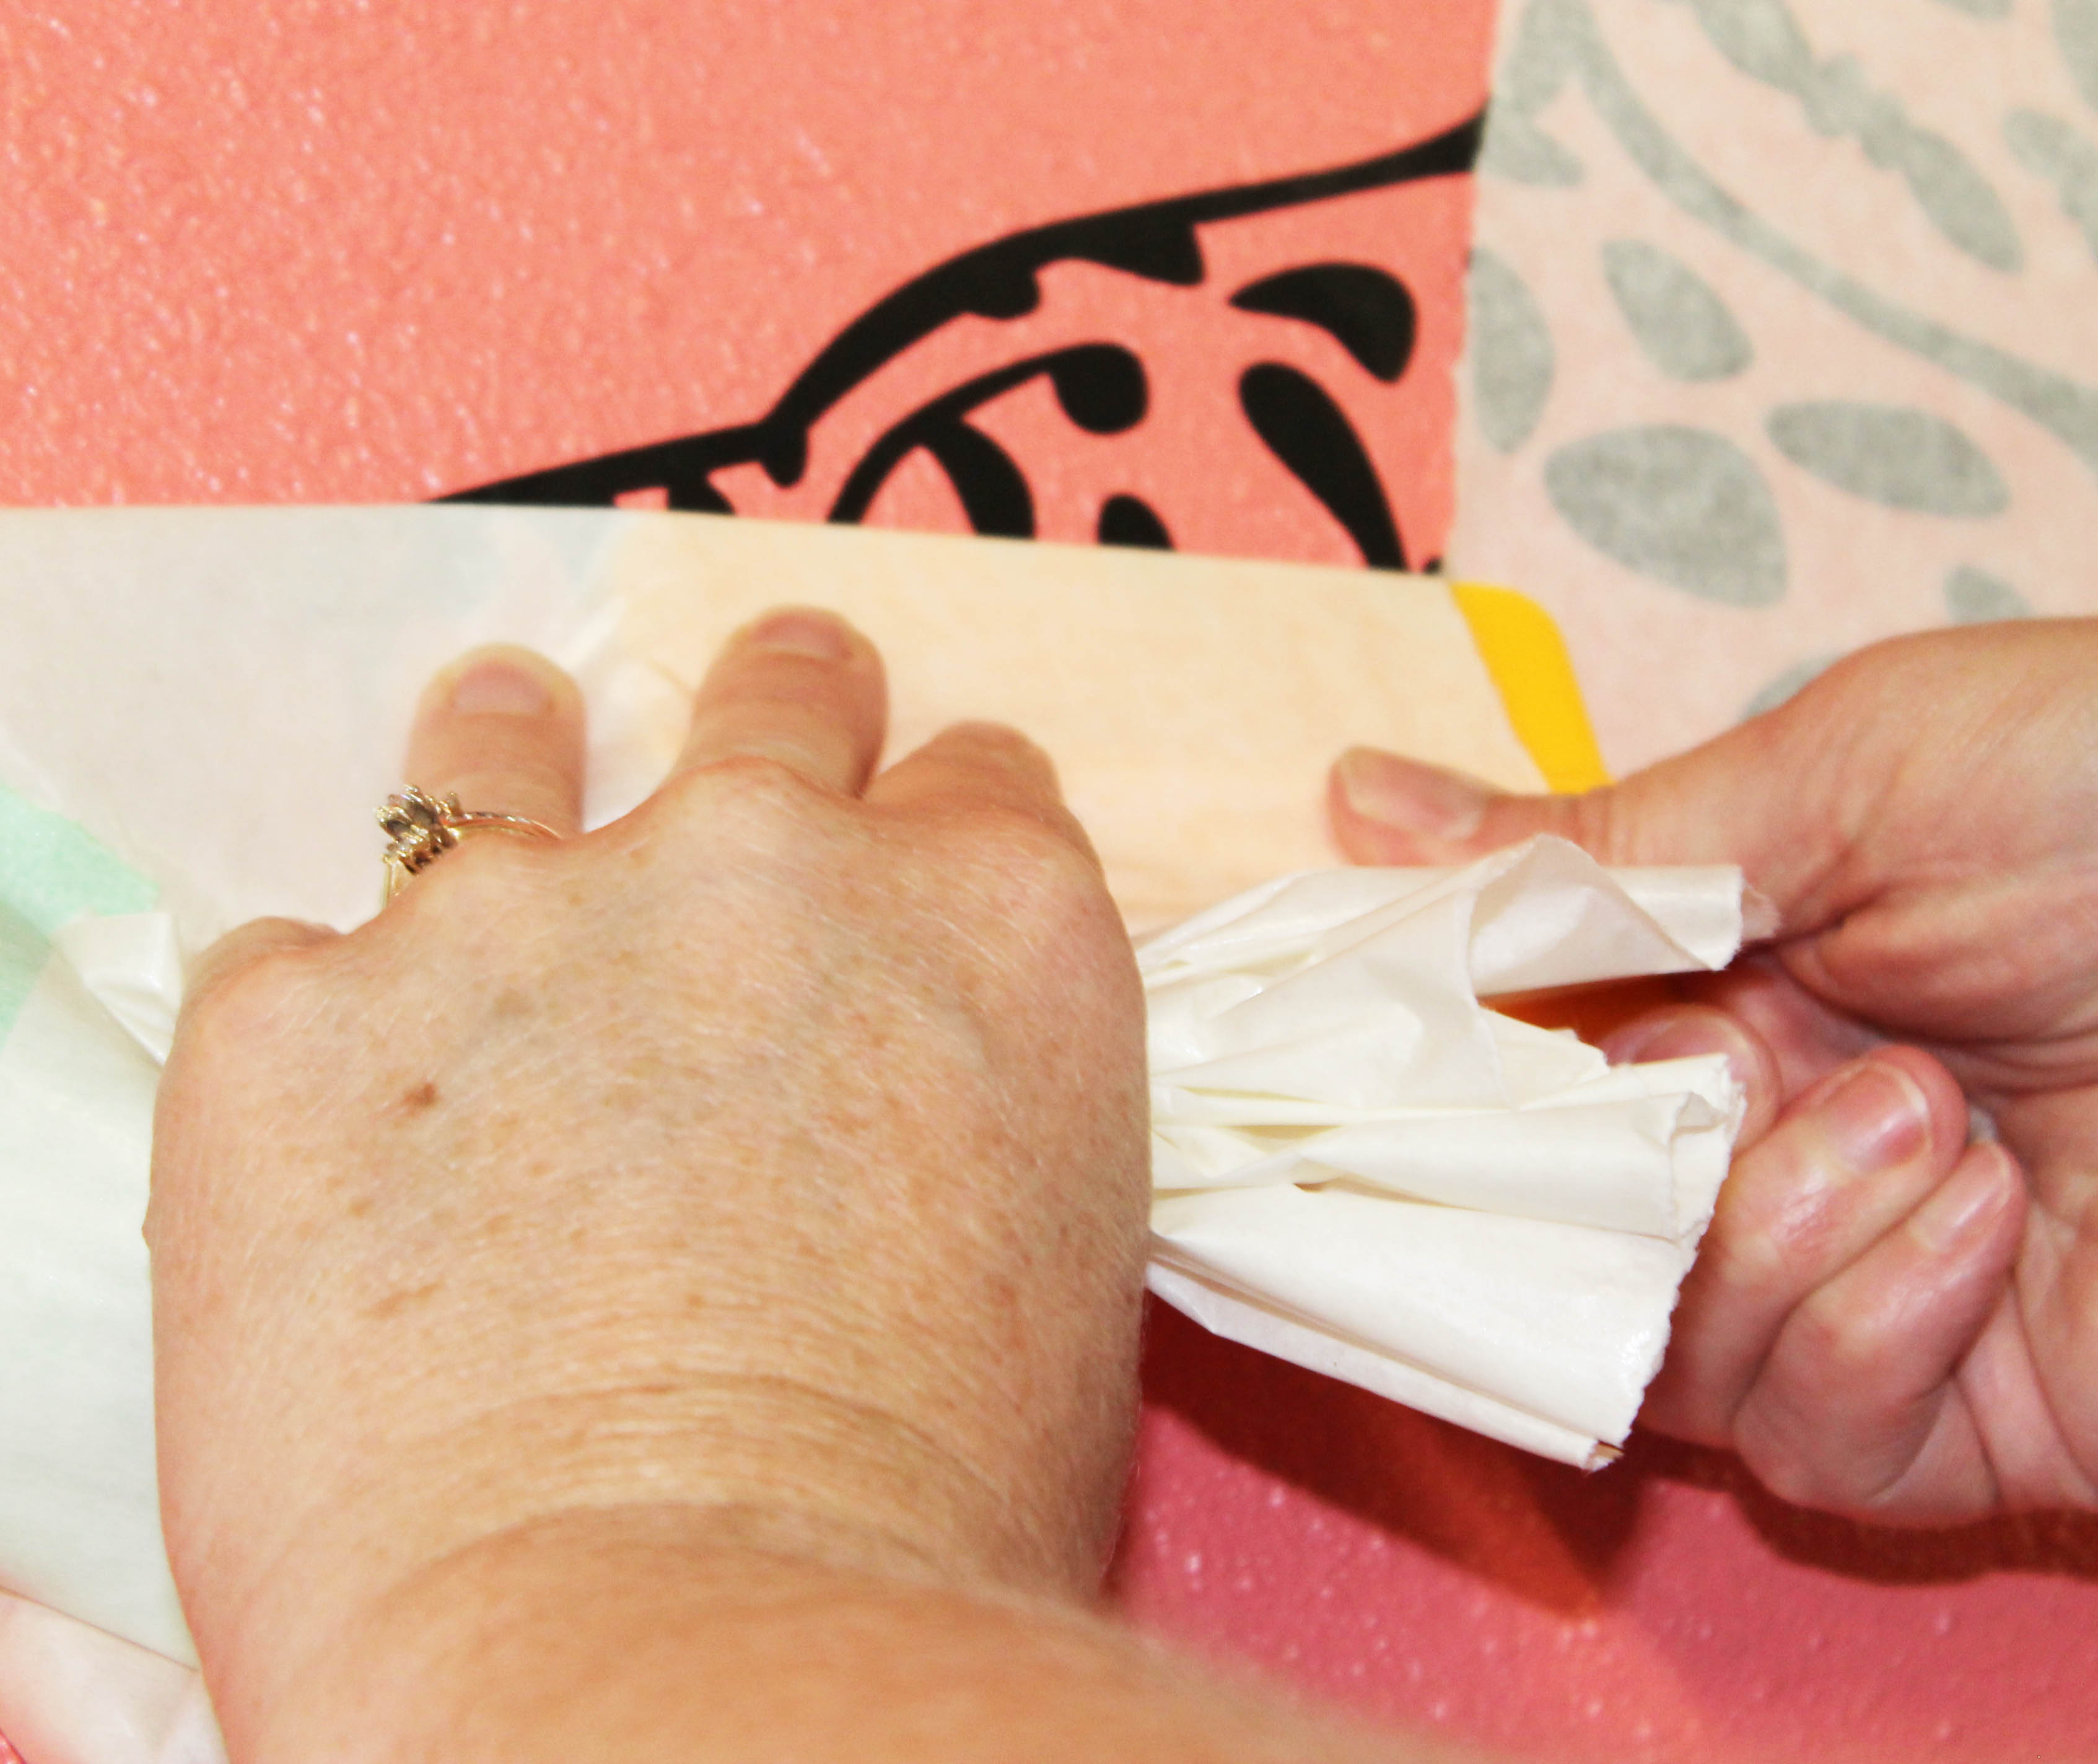 using-a-squeegee-to-peel-transfer-tape-wall-decal-2.jpg